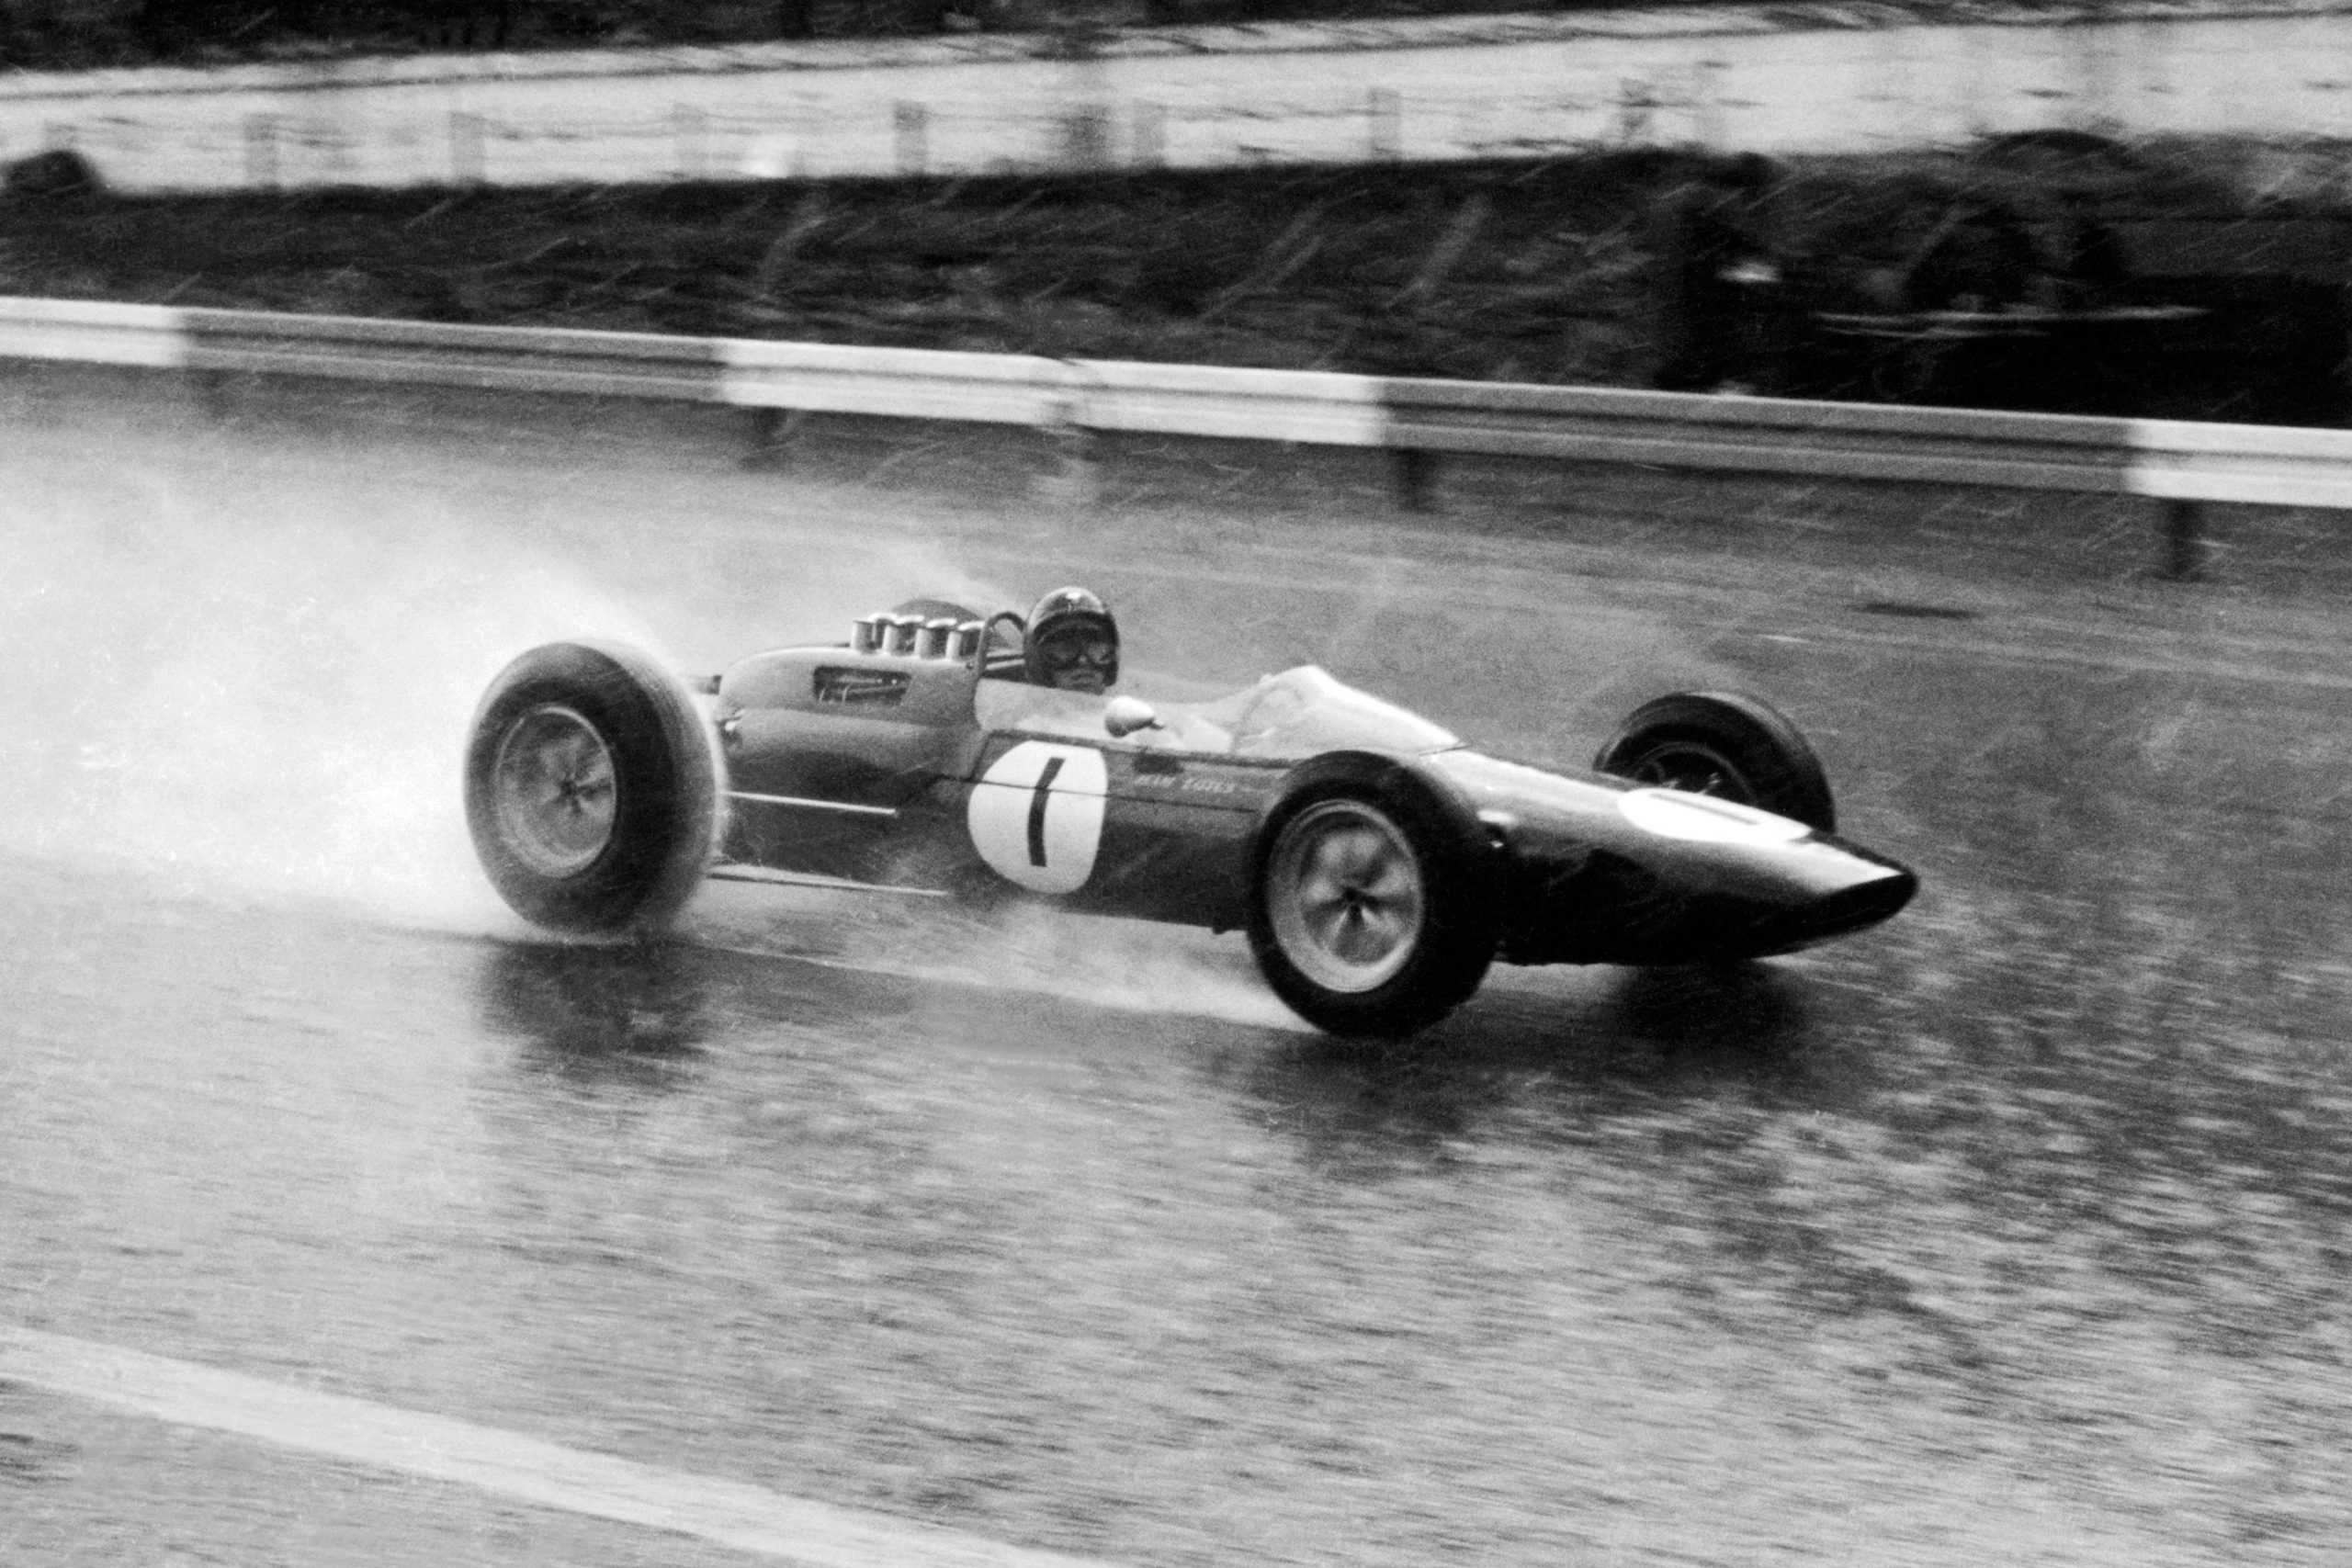 Jim Clark pressing on through the rain in his Lotus 25-Climax.